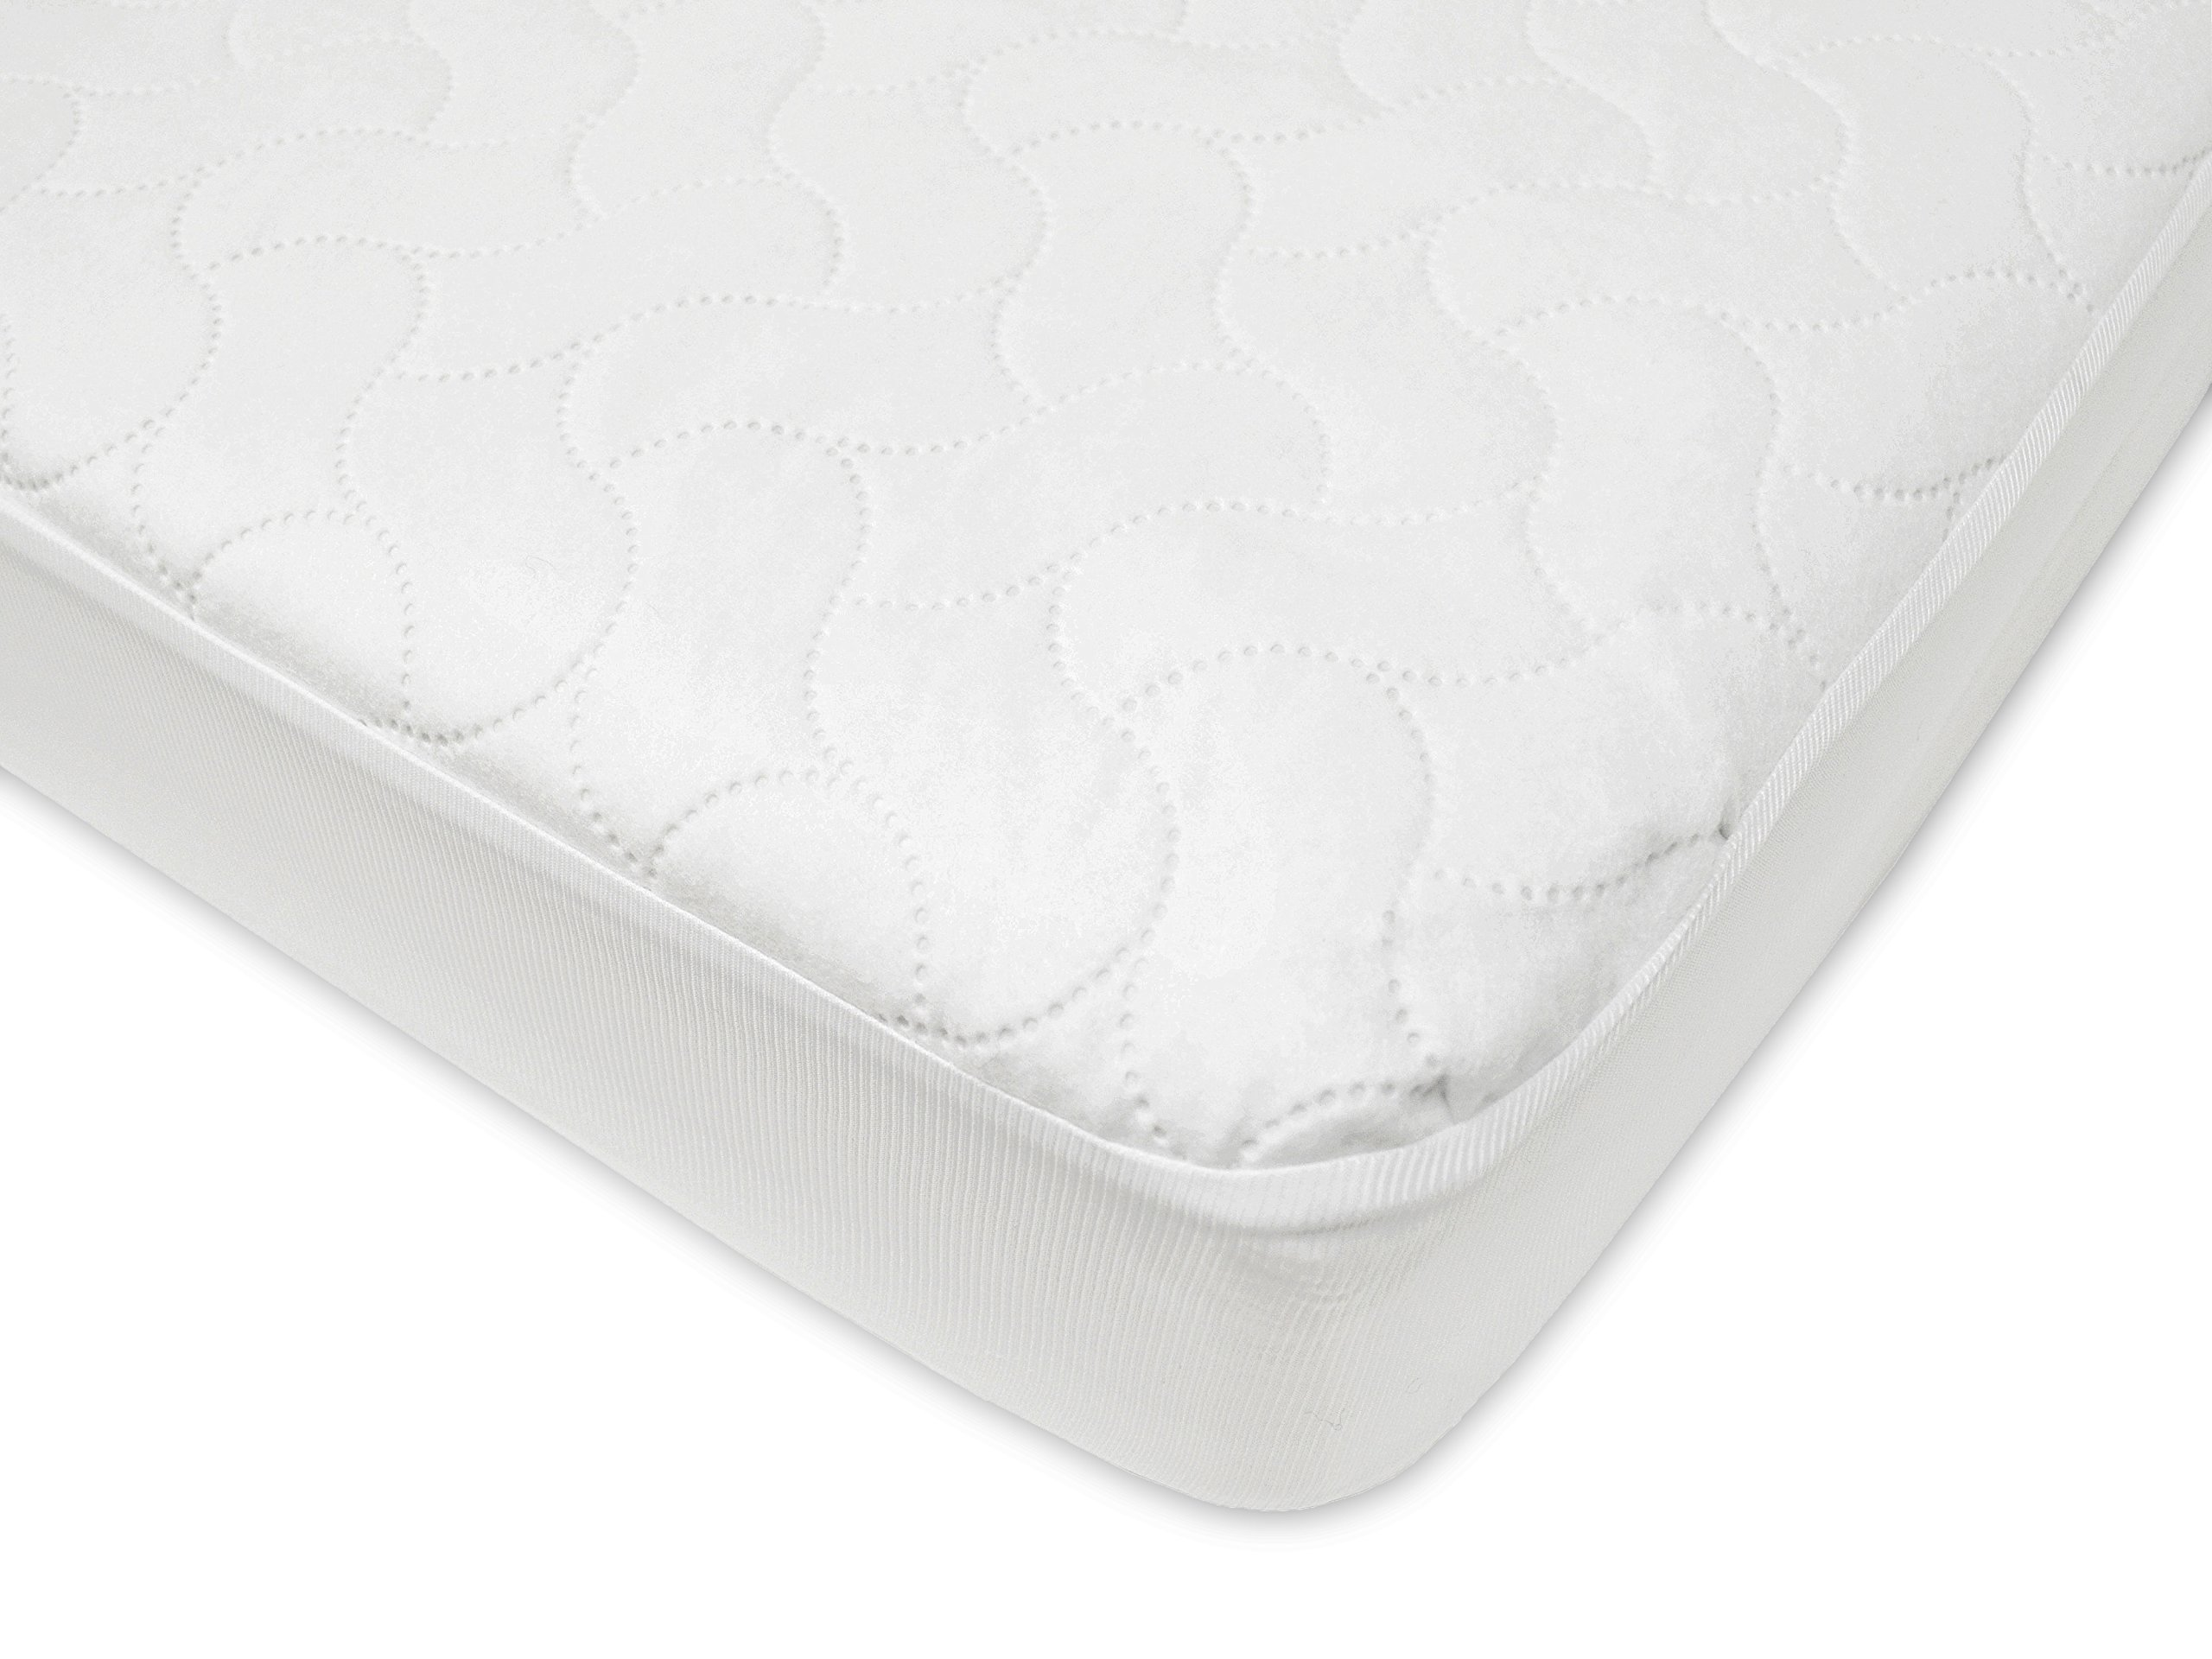 Protective Baby Mattress Pad Waterproof Sheeting Fitted ...